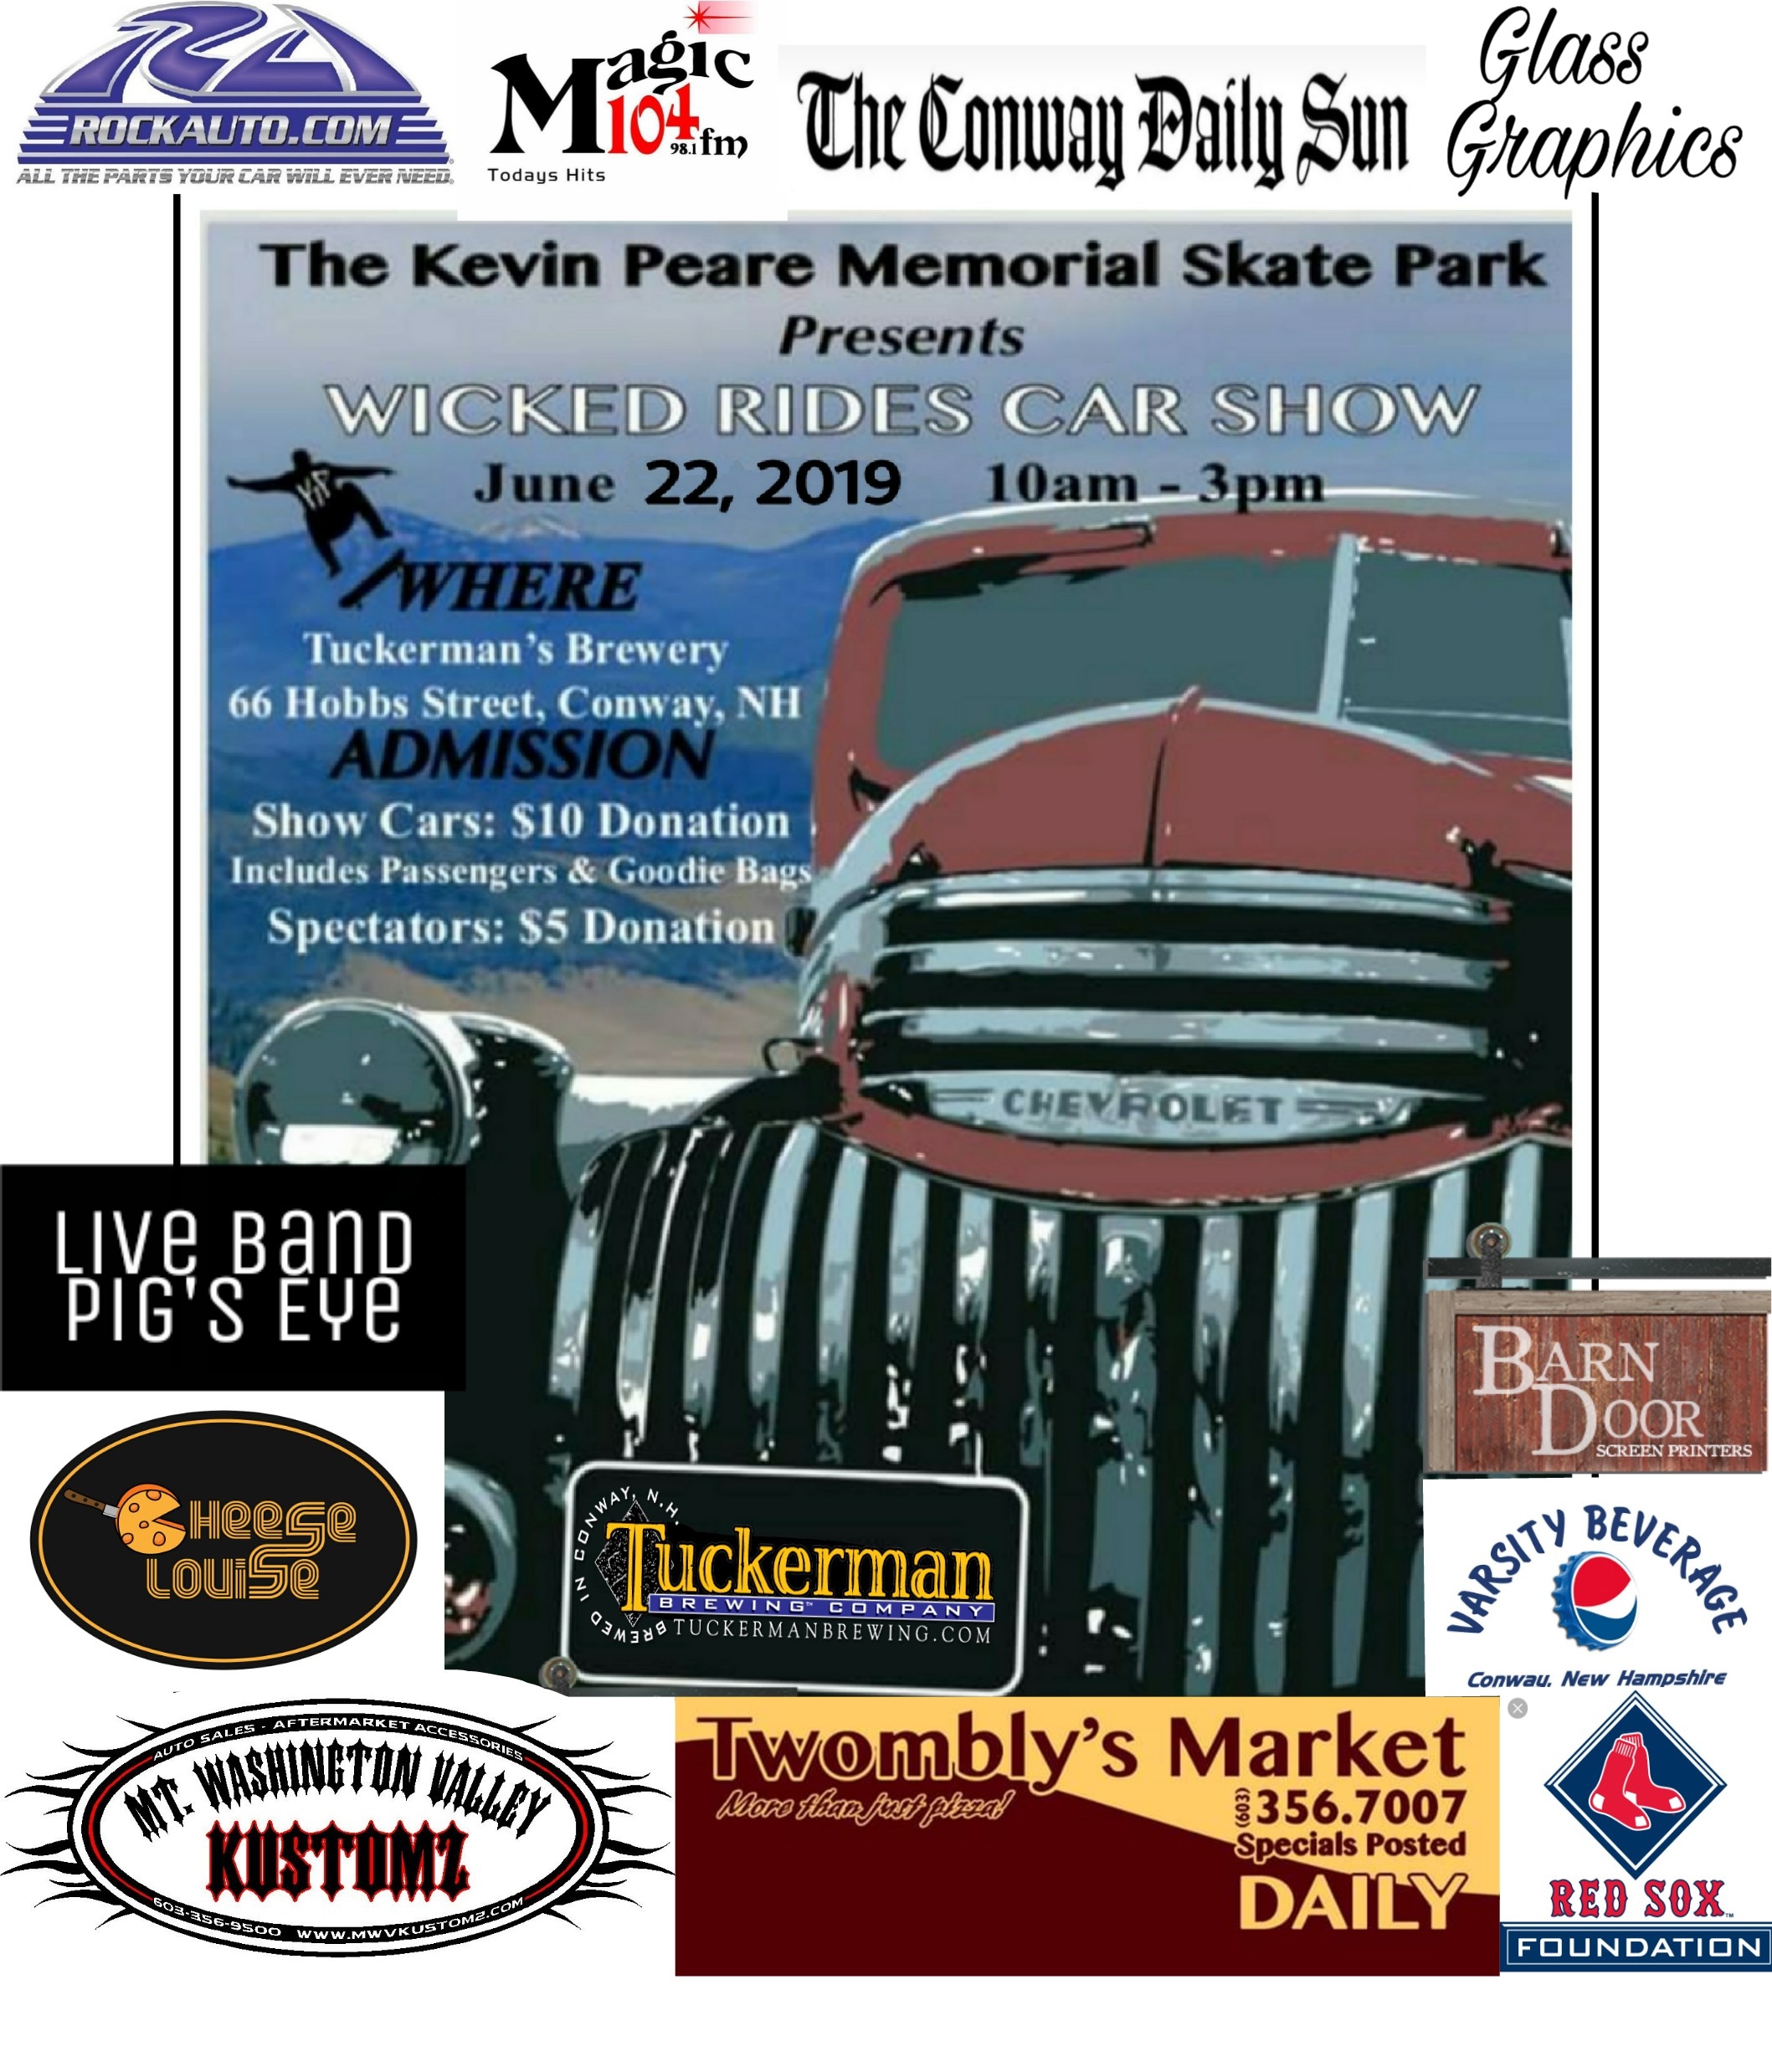 2nd Annual Wicked Rides Car Show